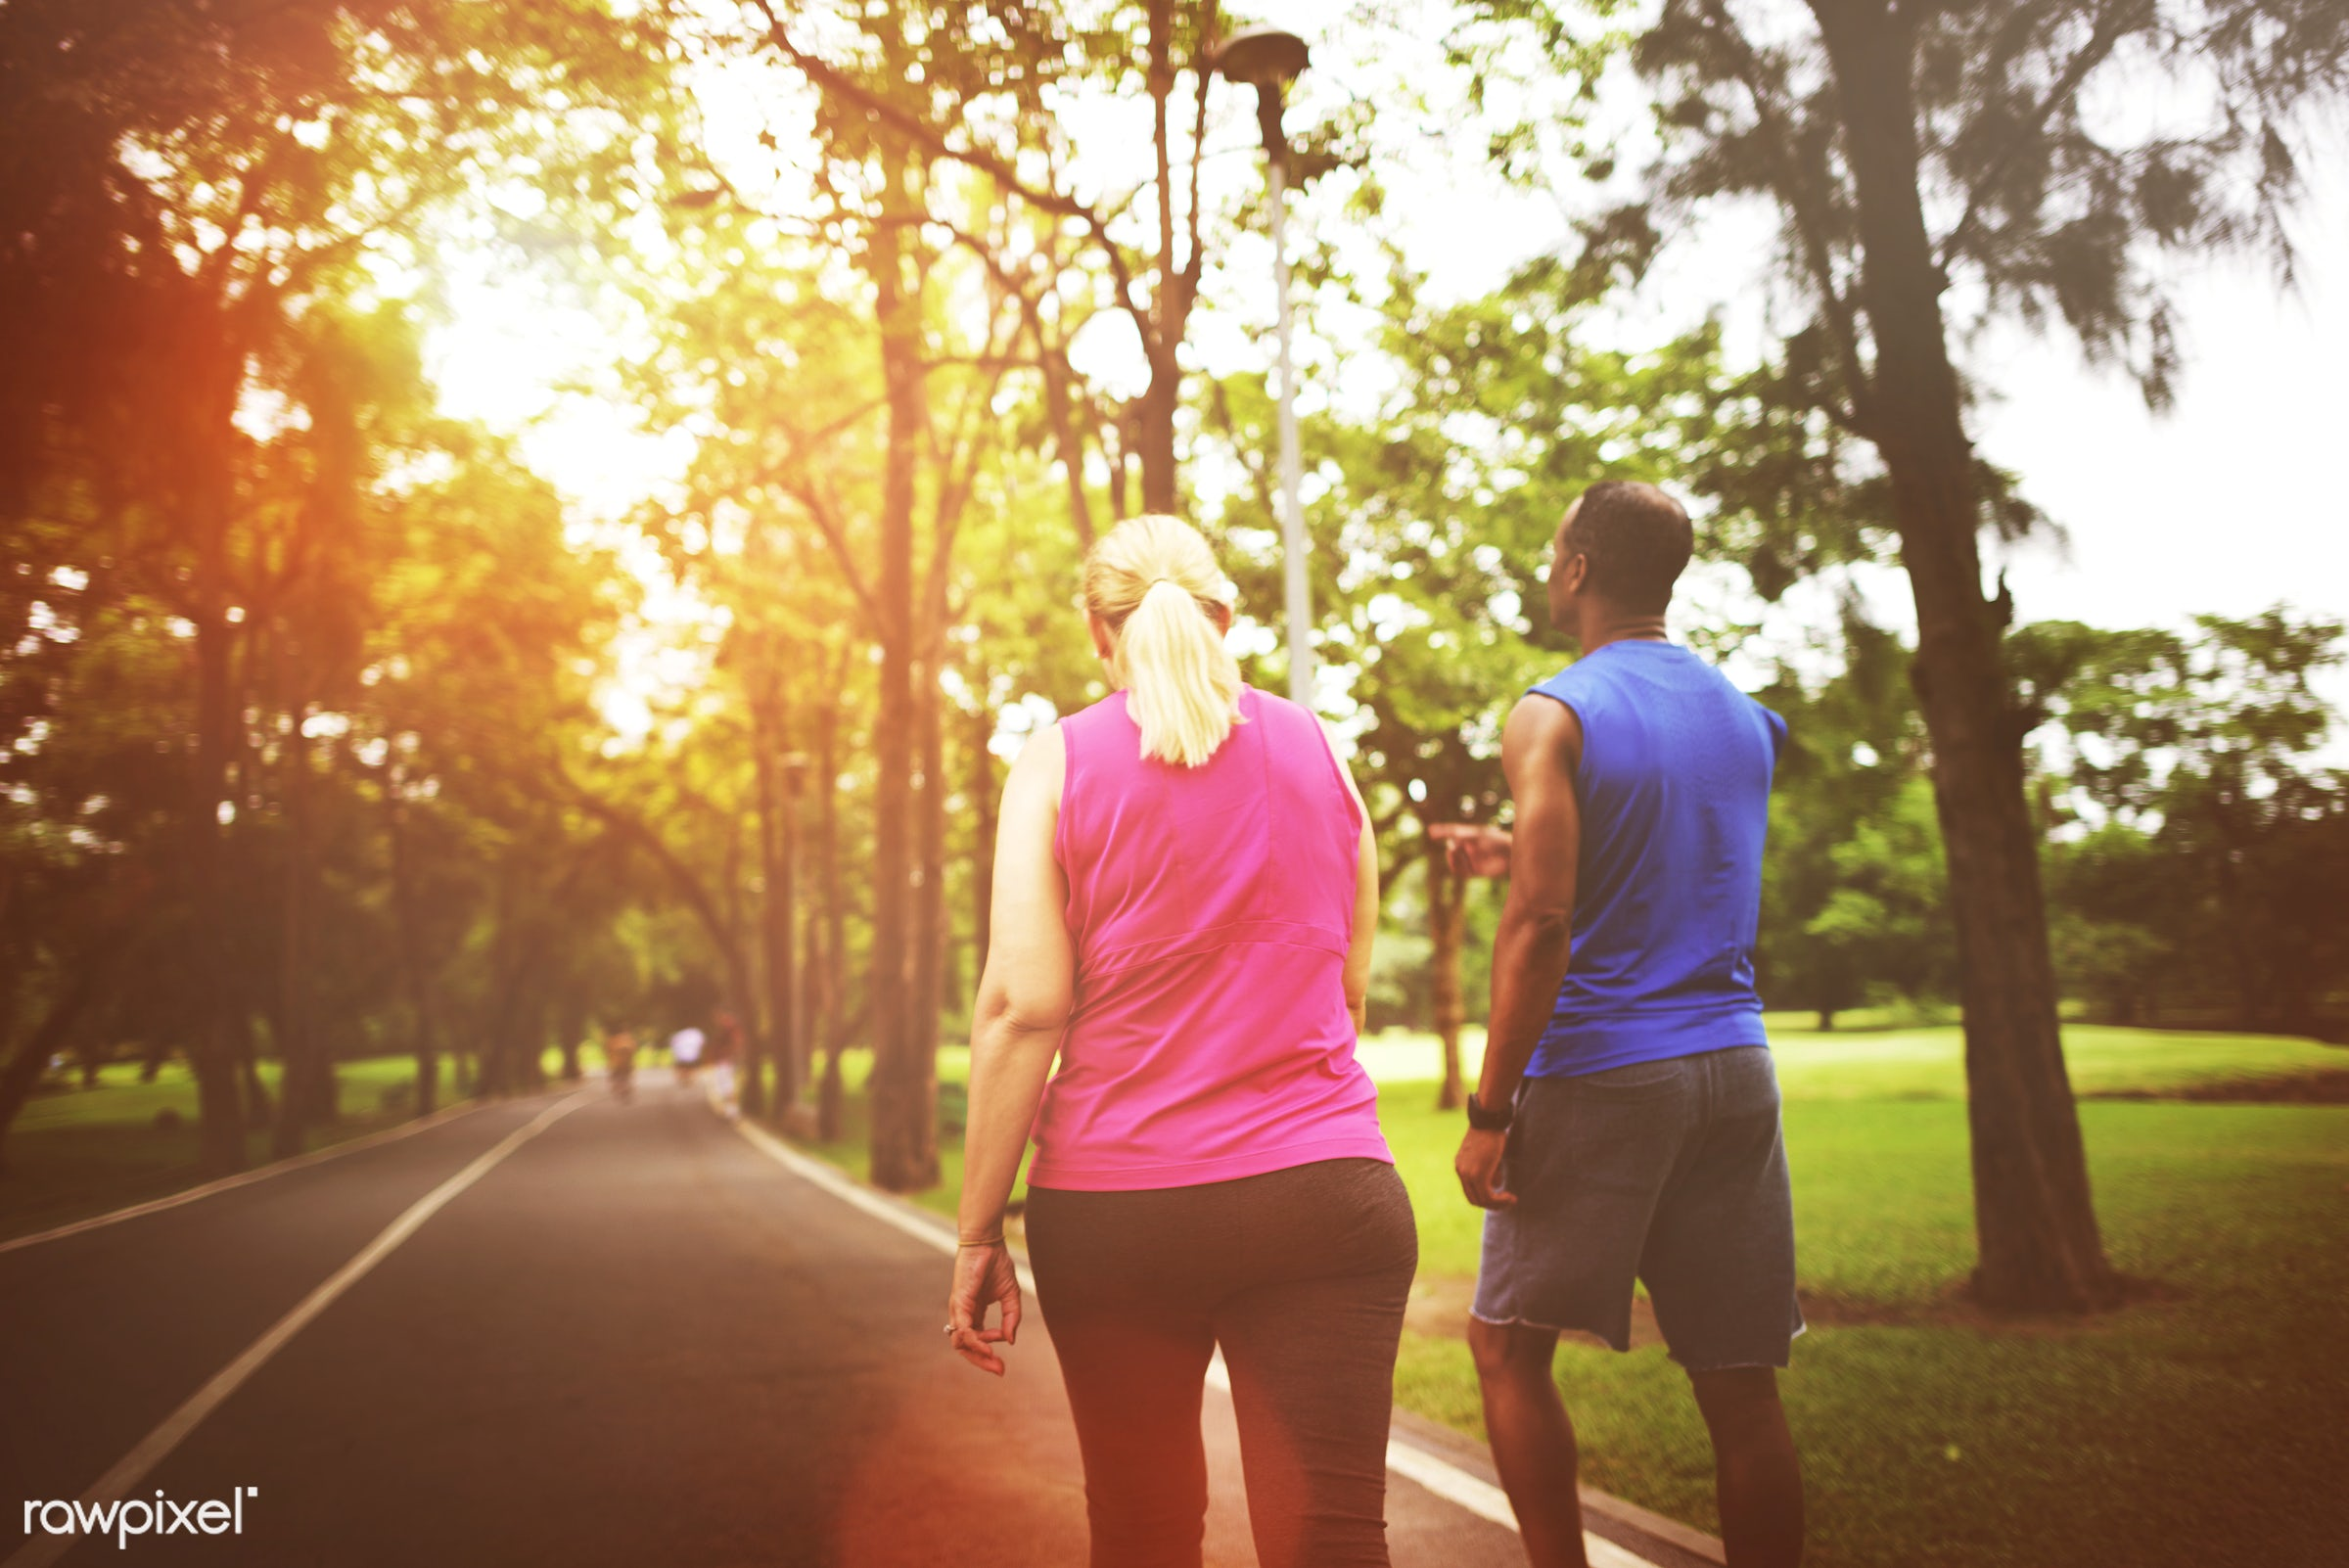 Couple running together at a park - fitness, active, activity, app, application, athlete, body building, cardio, cheerful,...